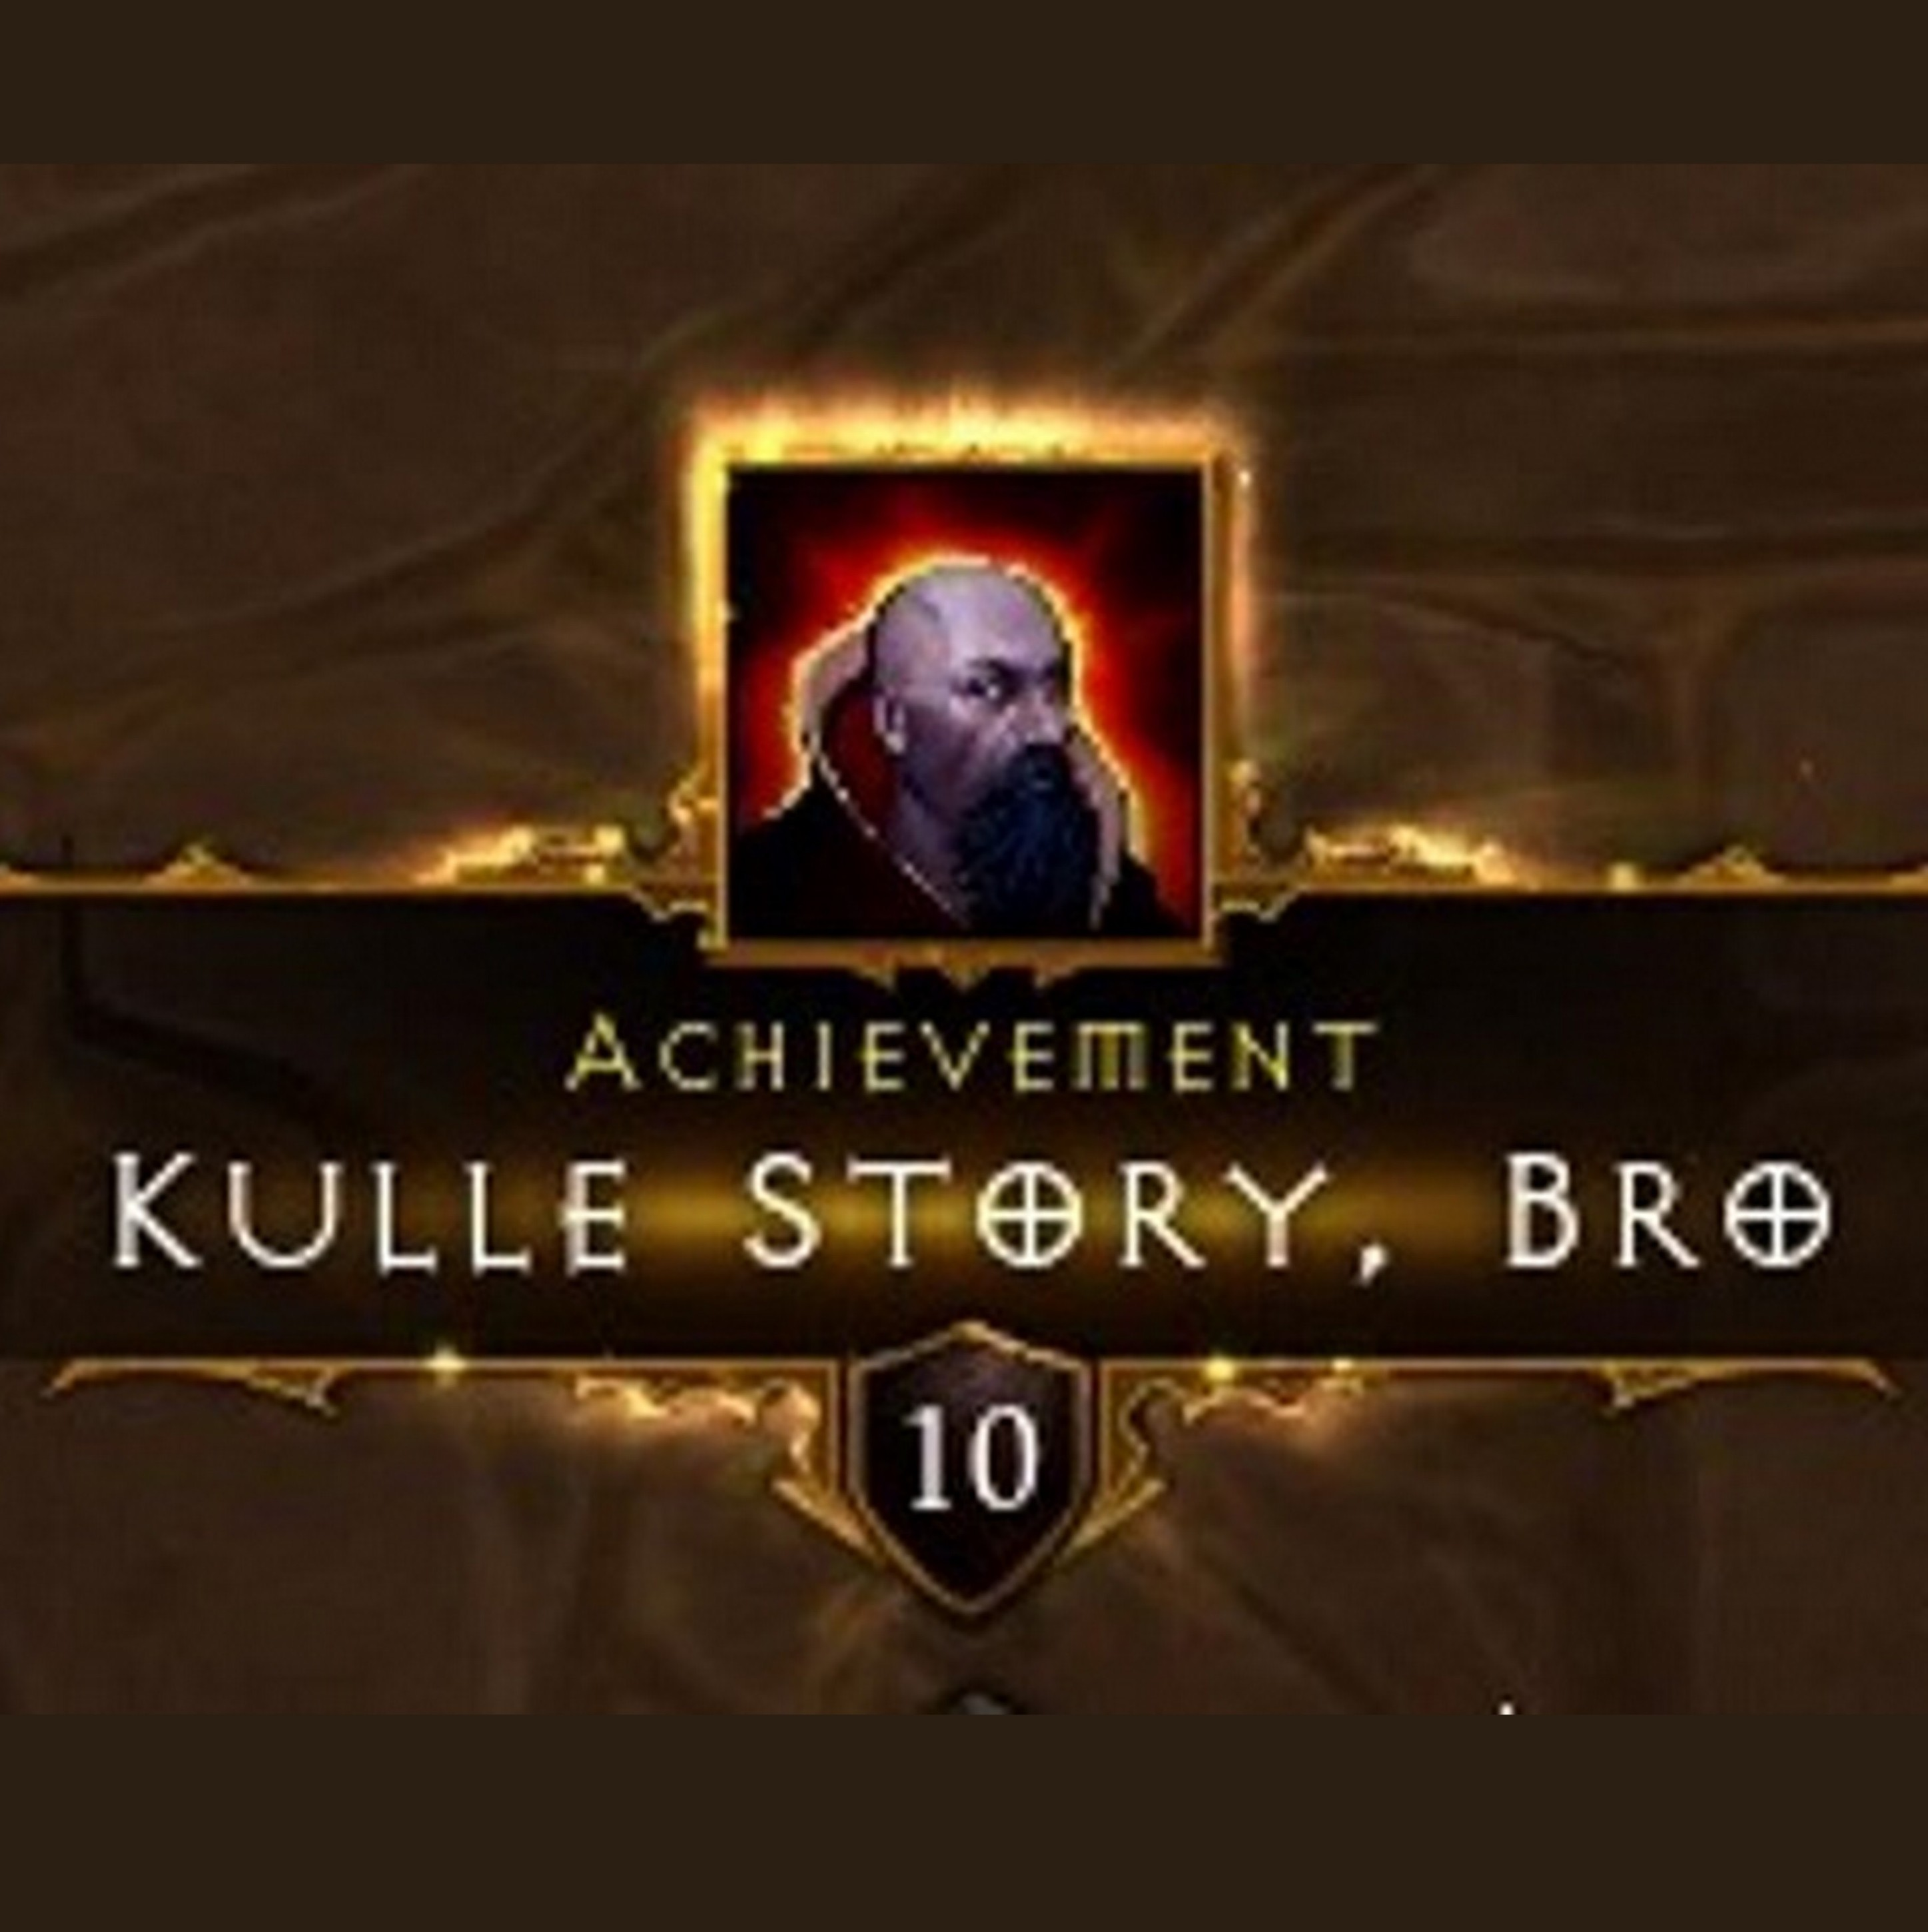 Kulle Story Bro - A Diablo 3 Podcast Episode 17